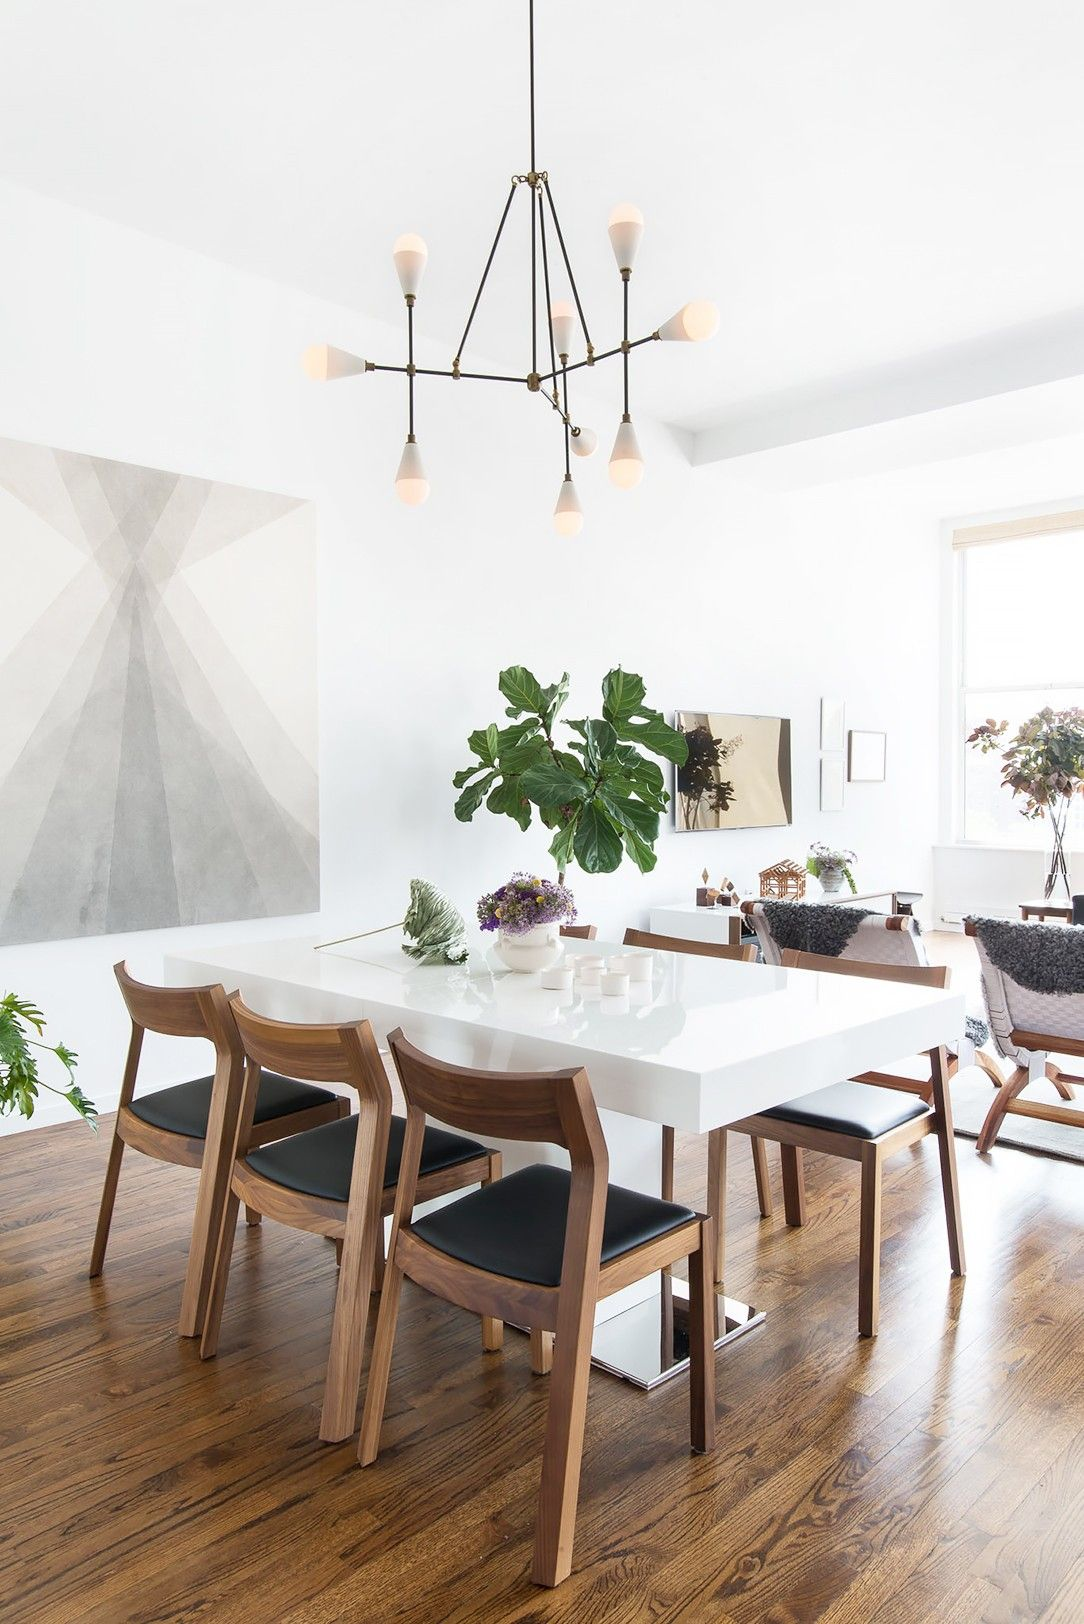 5 Exciting Dining Set Ideas for a Minimalist Dining Room